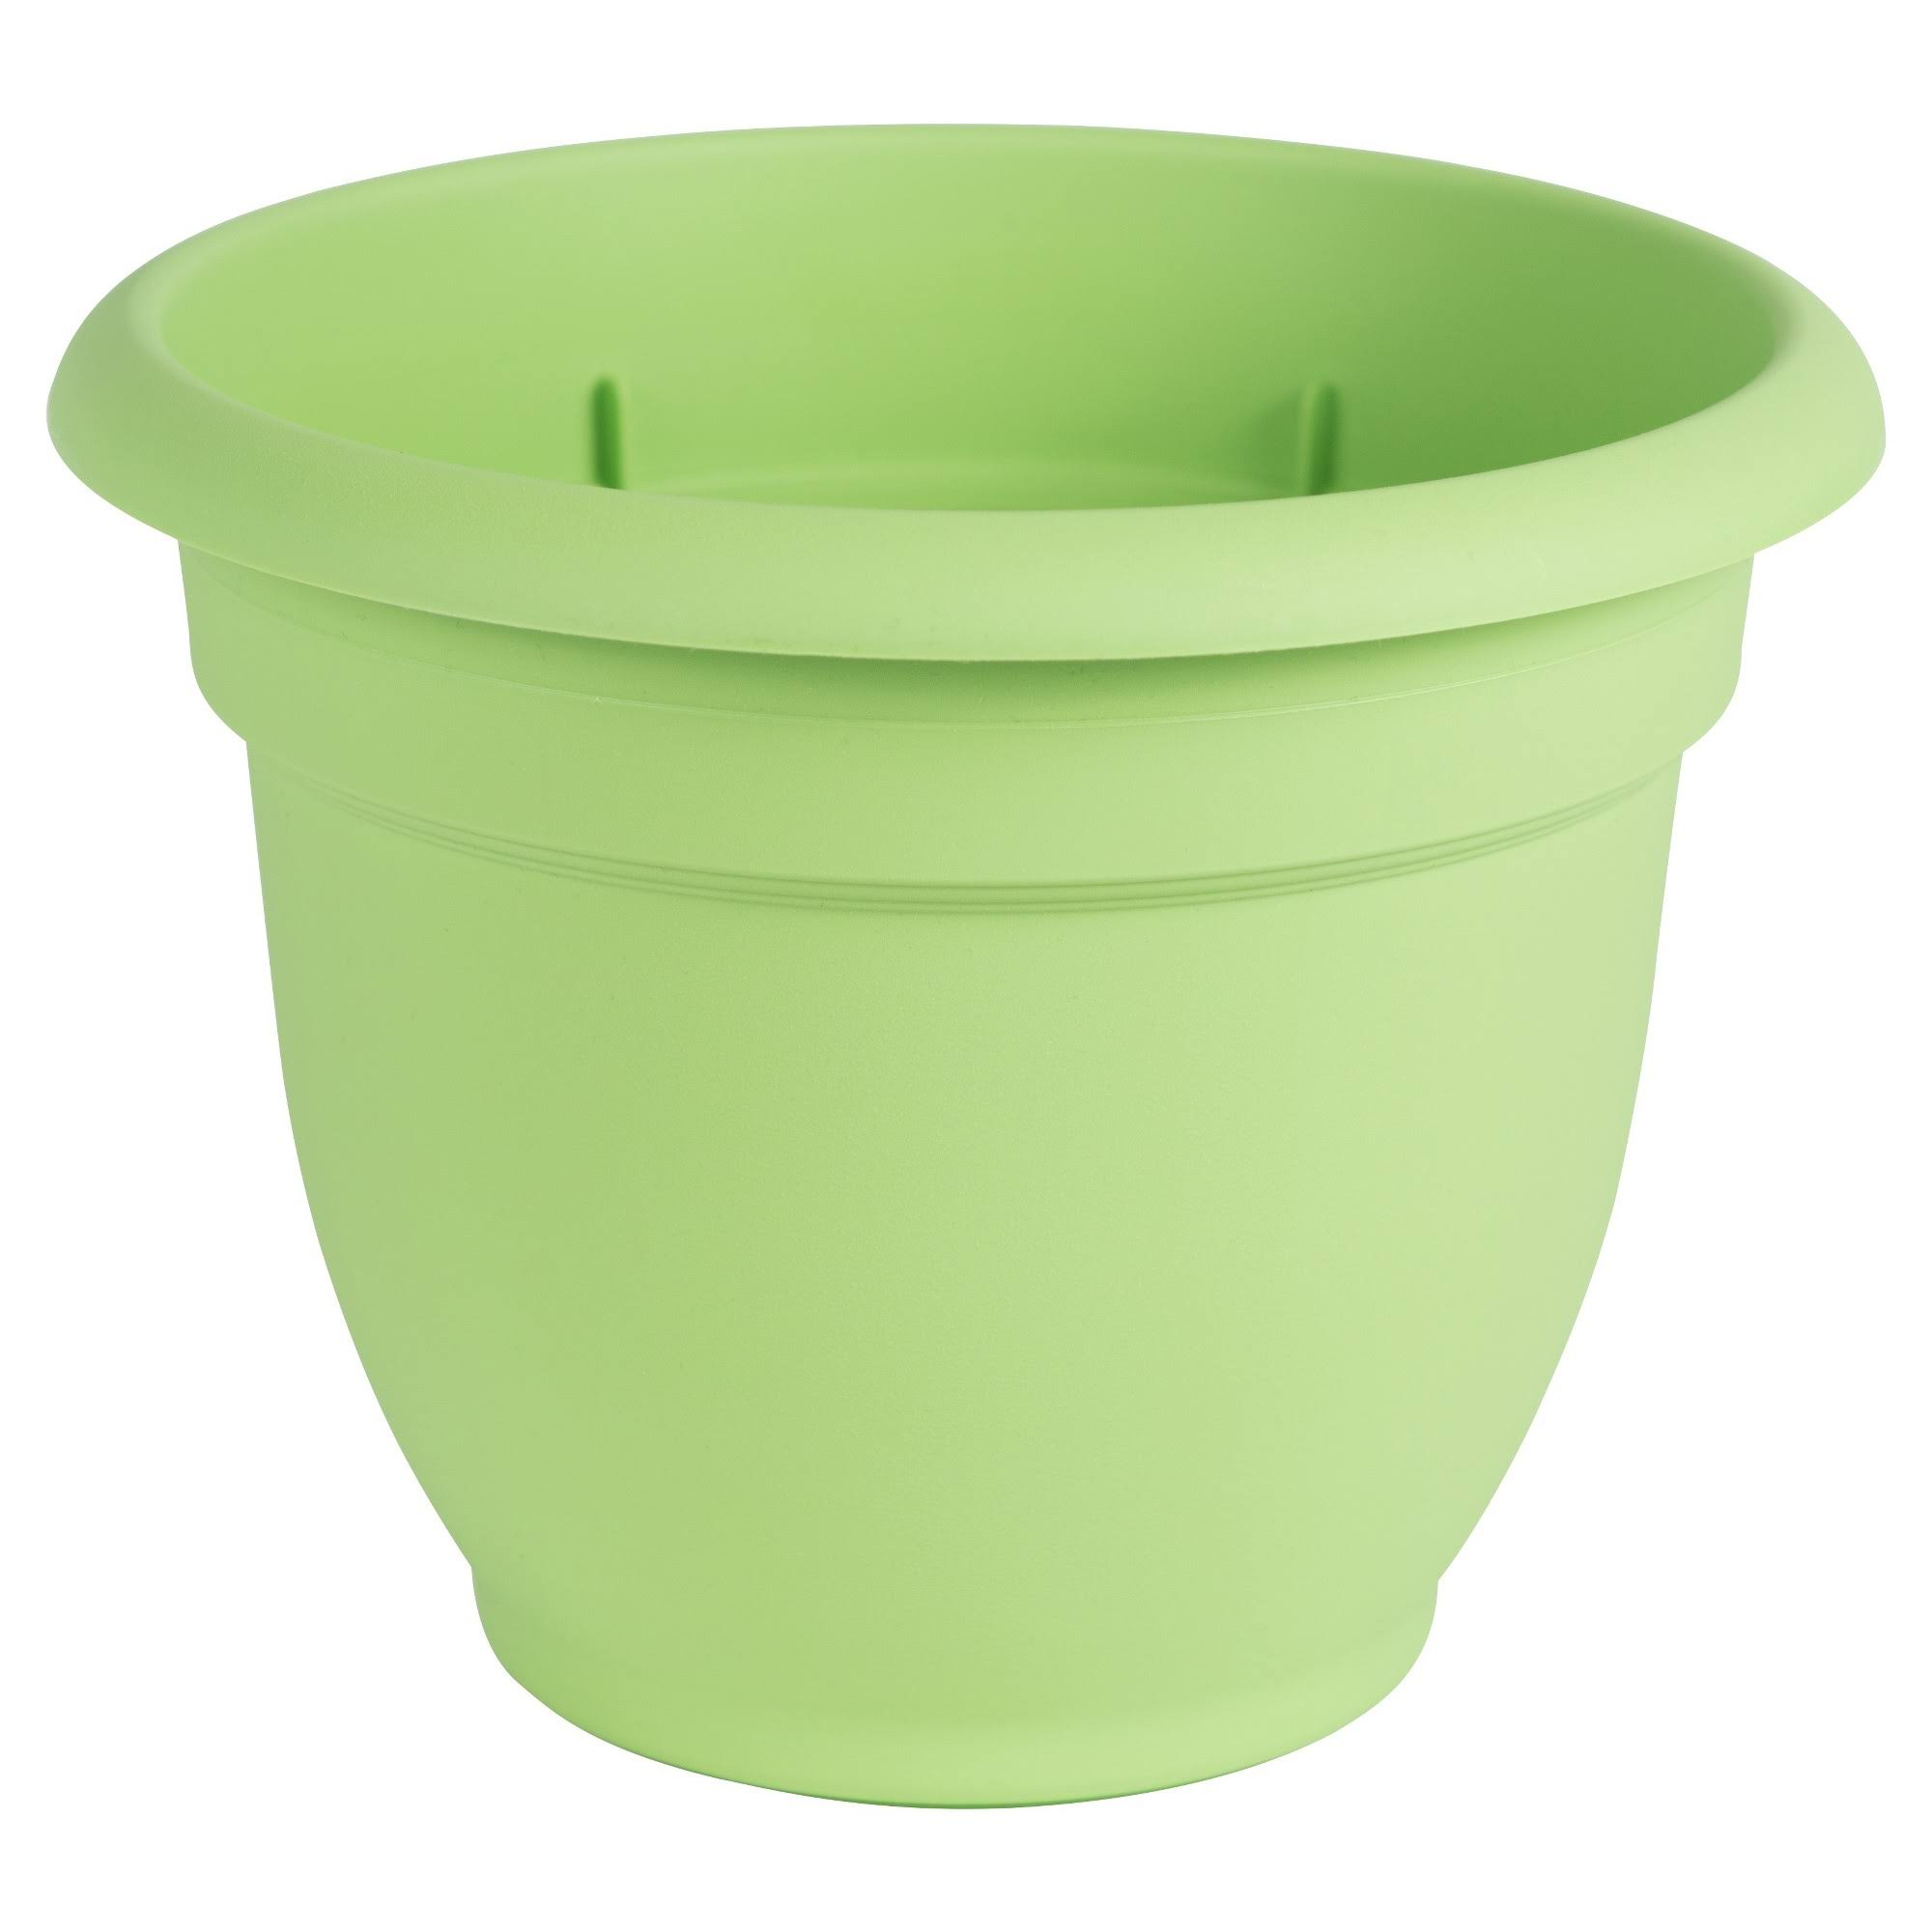 Bloem AP0625 Ariana Planter with Self Watering Disc Insert - Honey Dew, 6""